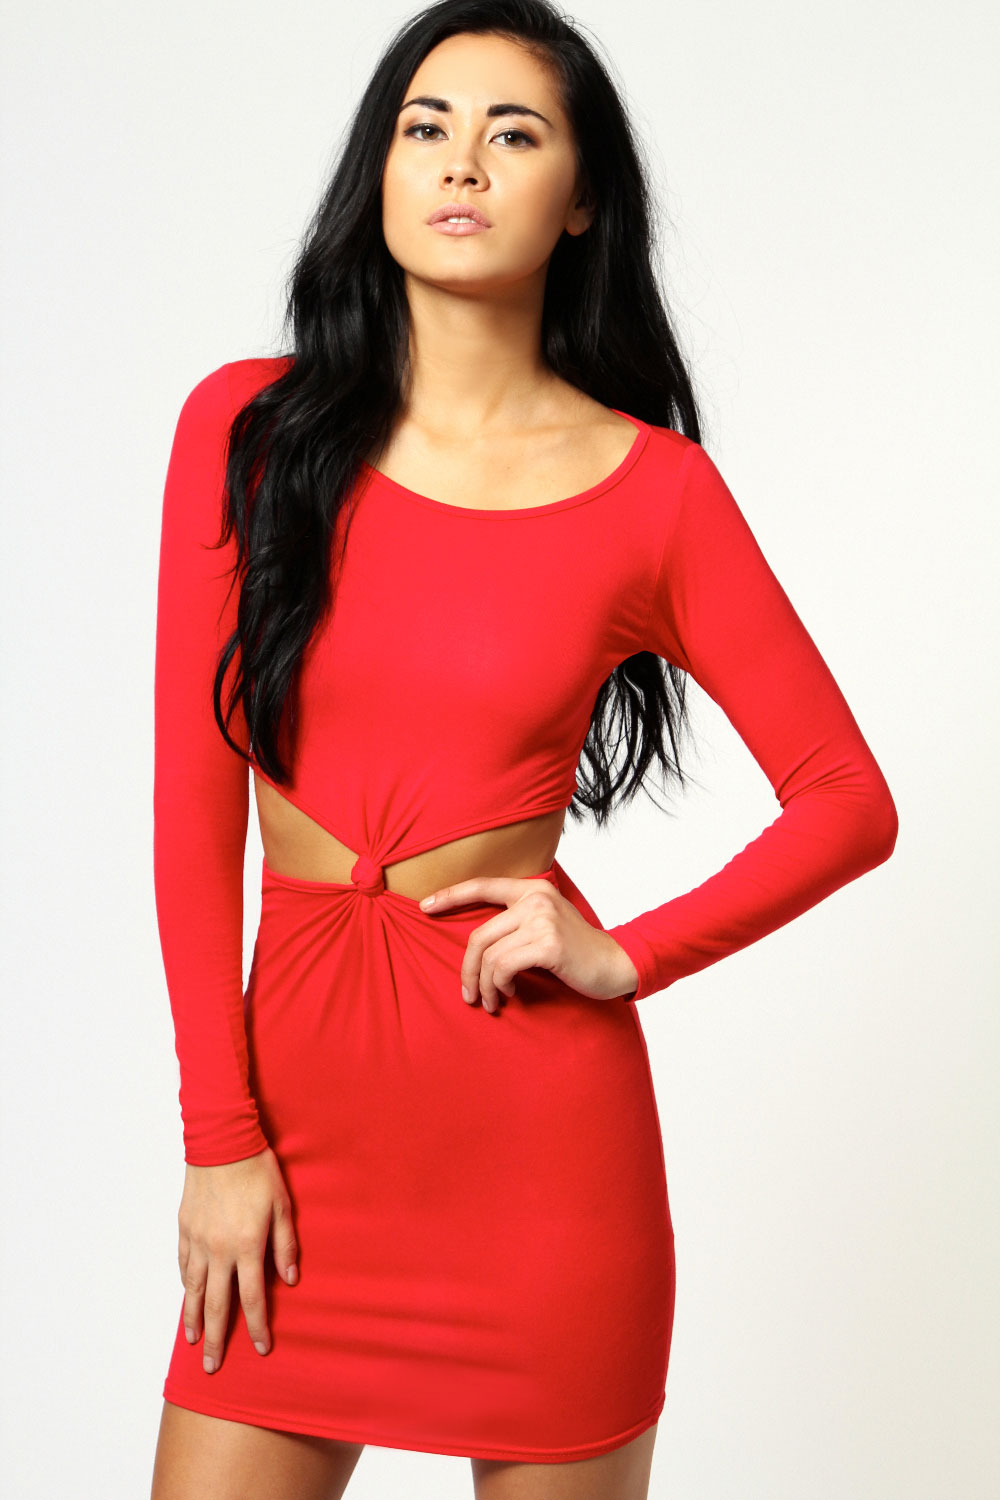 Red Bodycon Dress Picture Collection Dressedupgirl Com